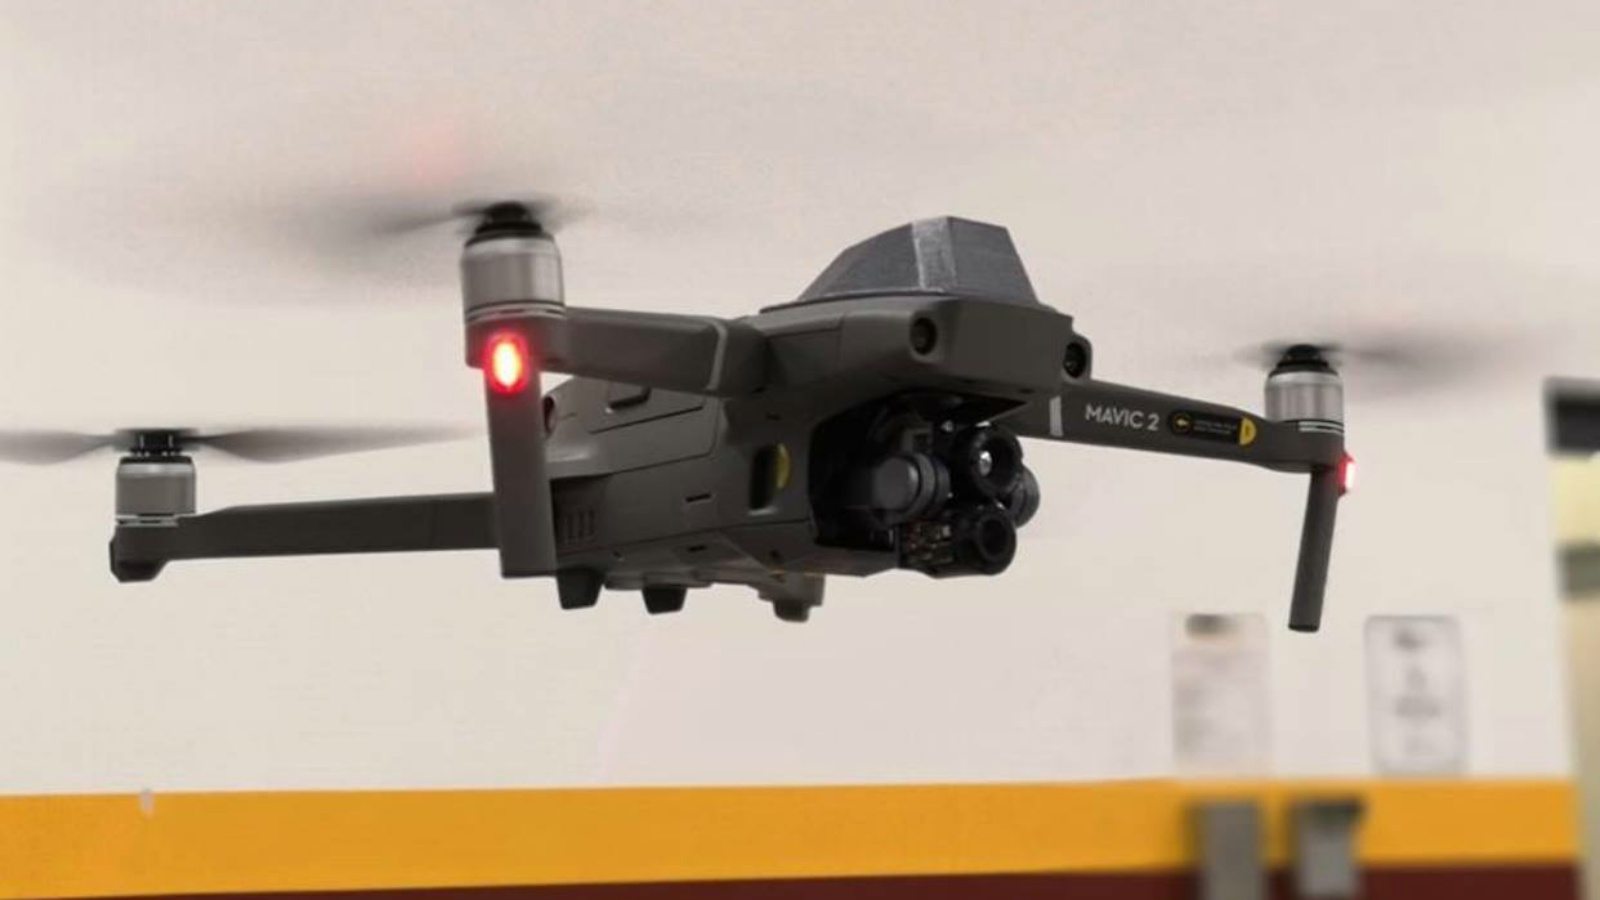 Mavic 2 Zoom FLIR Boson thermal drone - details and pricing